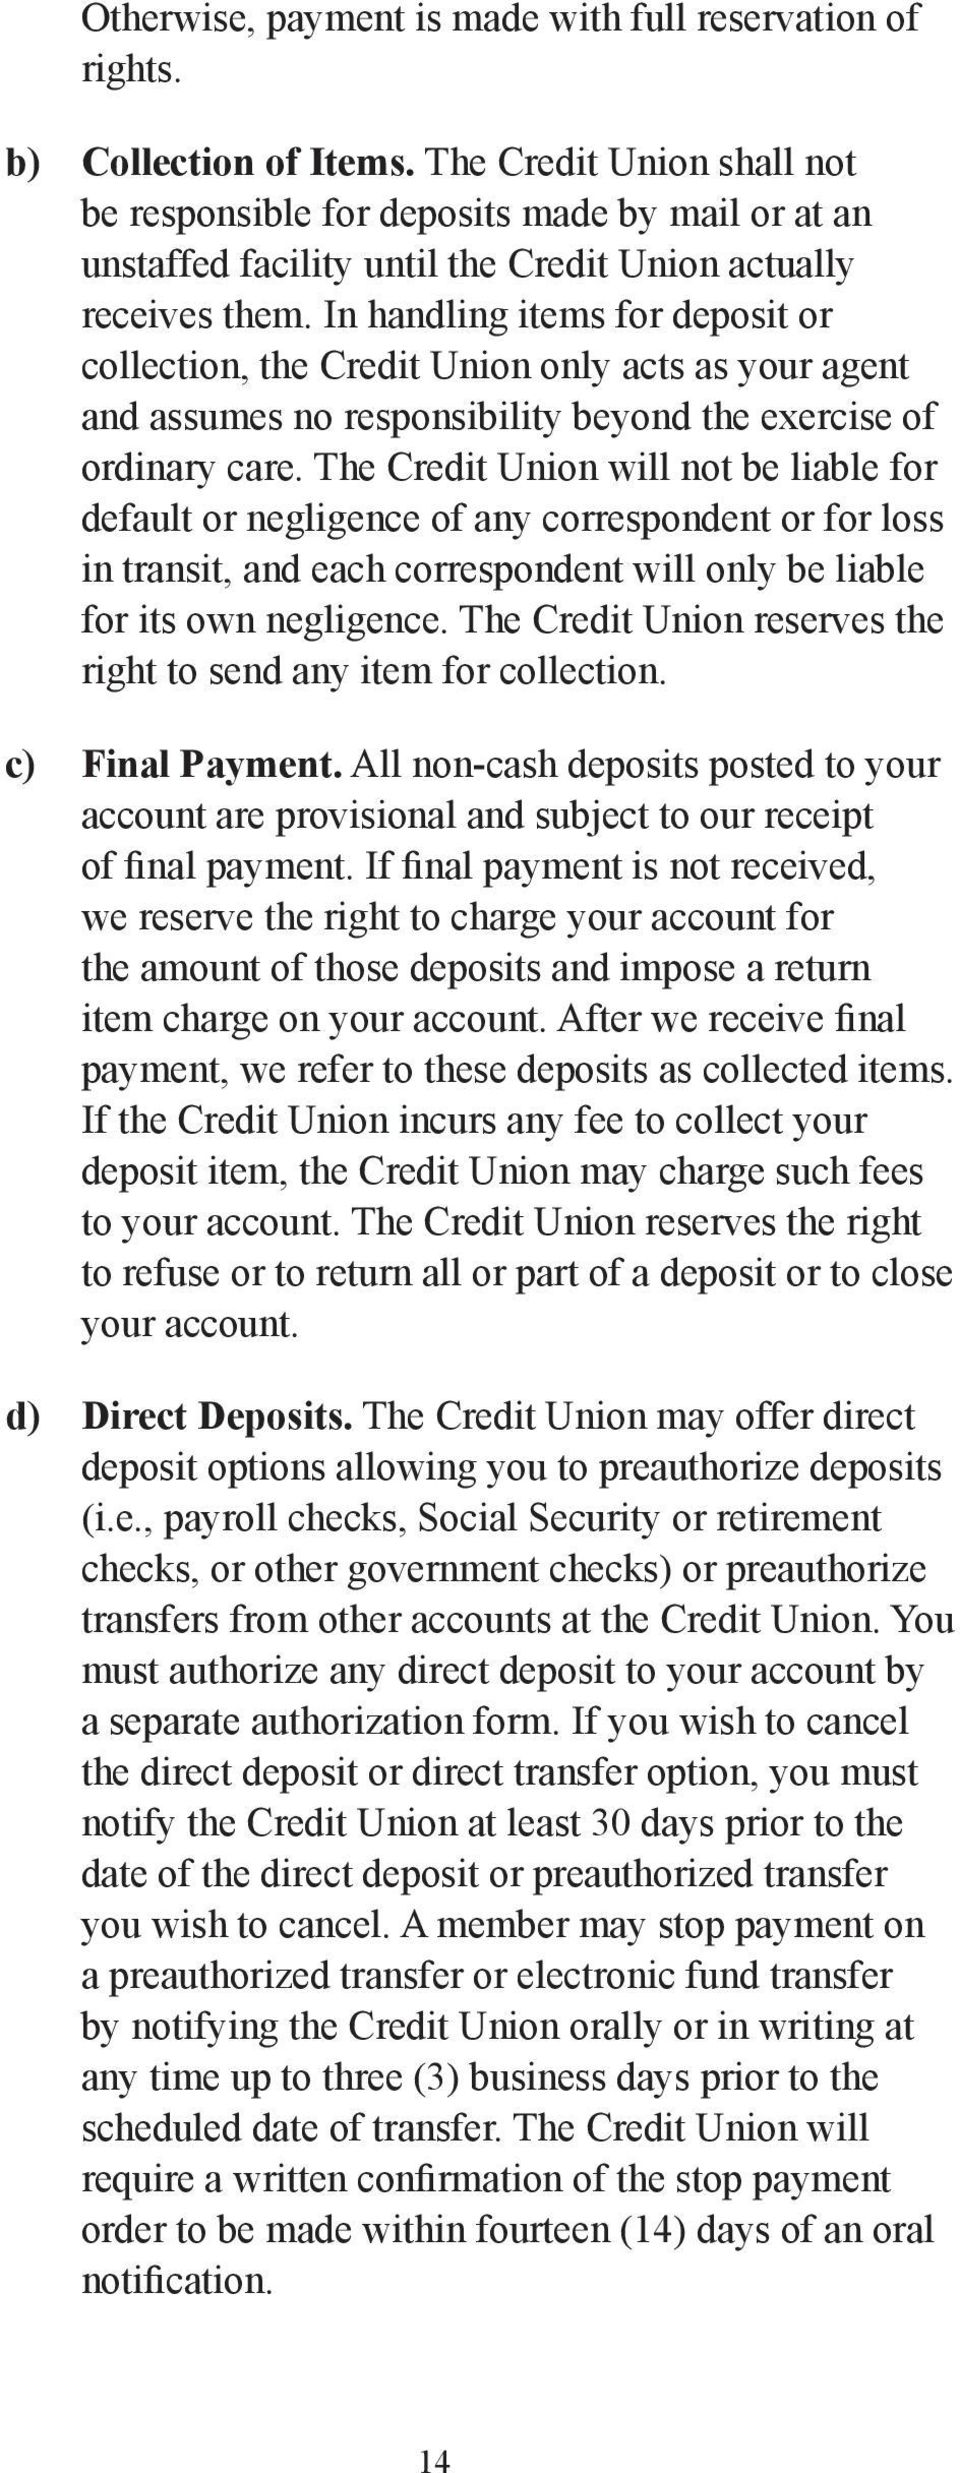 In handling items for deposit or collection, the Credit Union only acts as your agent and assumes no responsibility beyond the exercise of ordinary care.